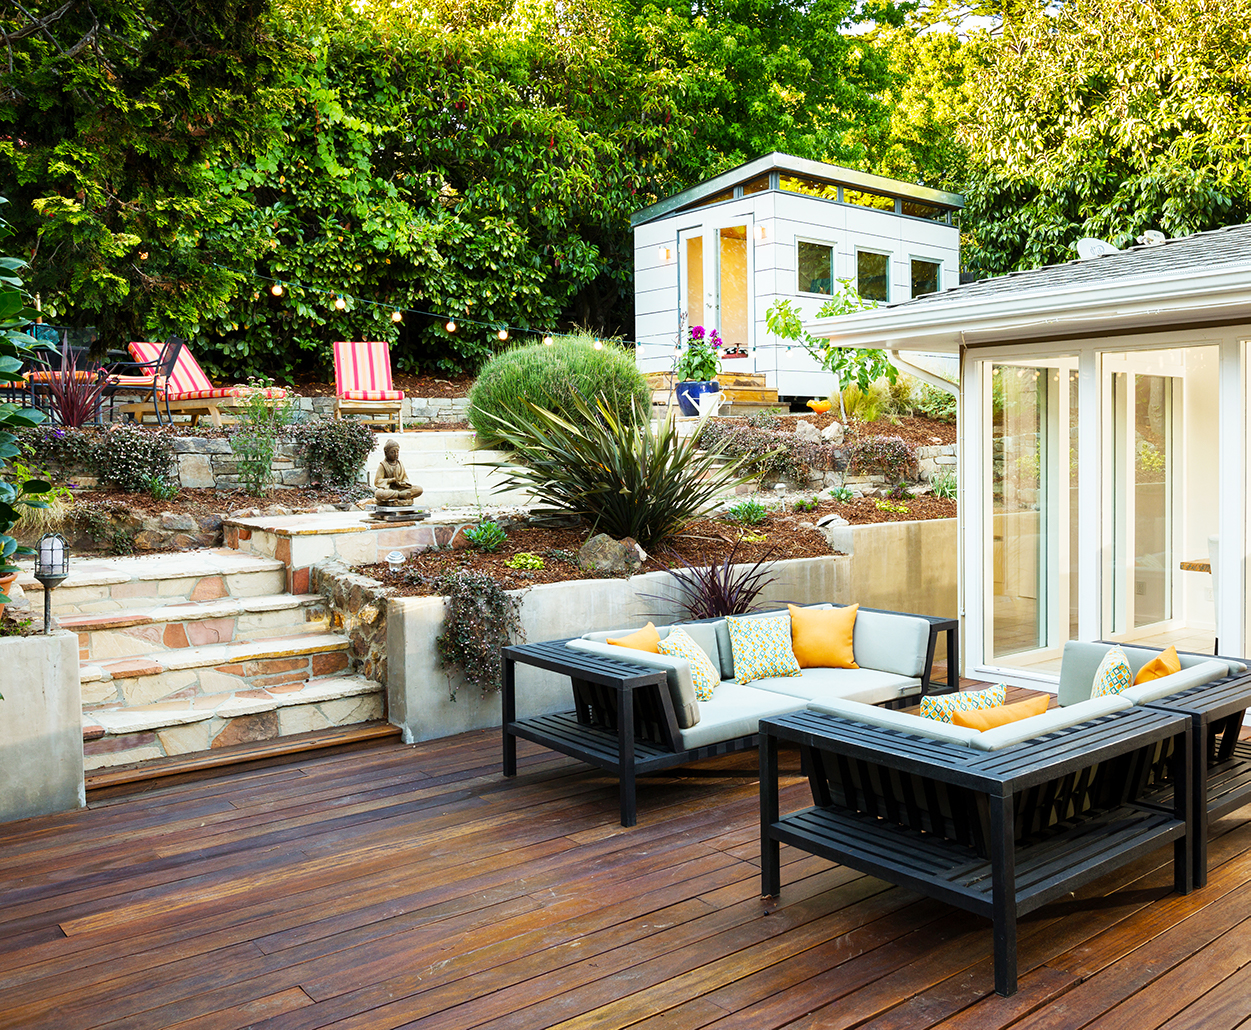 A photo of a backyard patio setup with benches and plants.